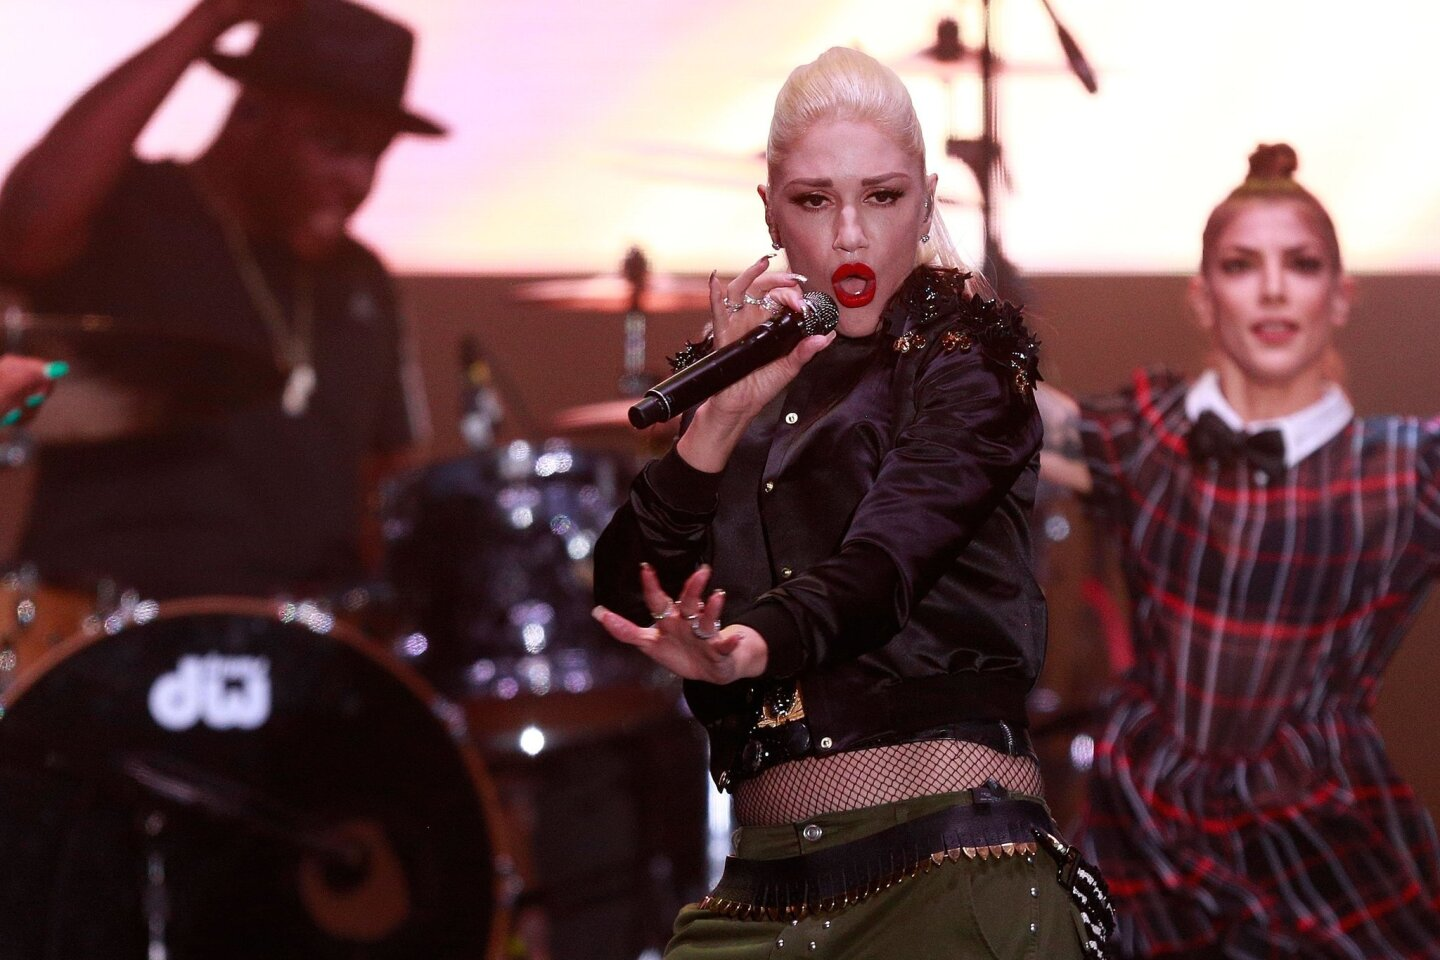 Gwen Stefani performs All-Star game concert series